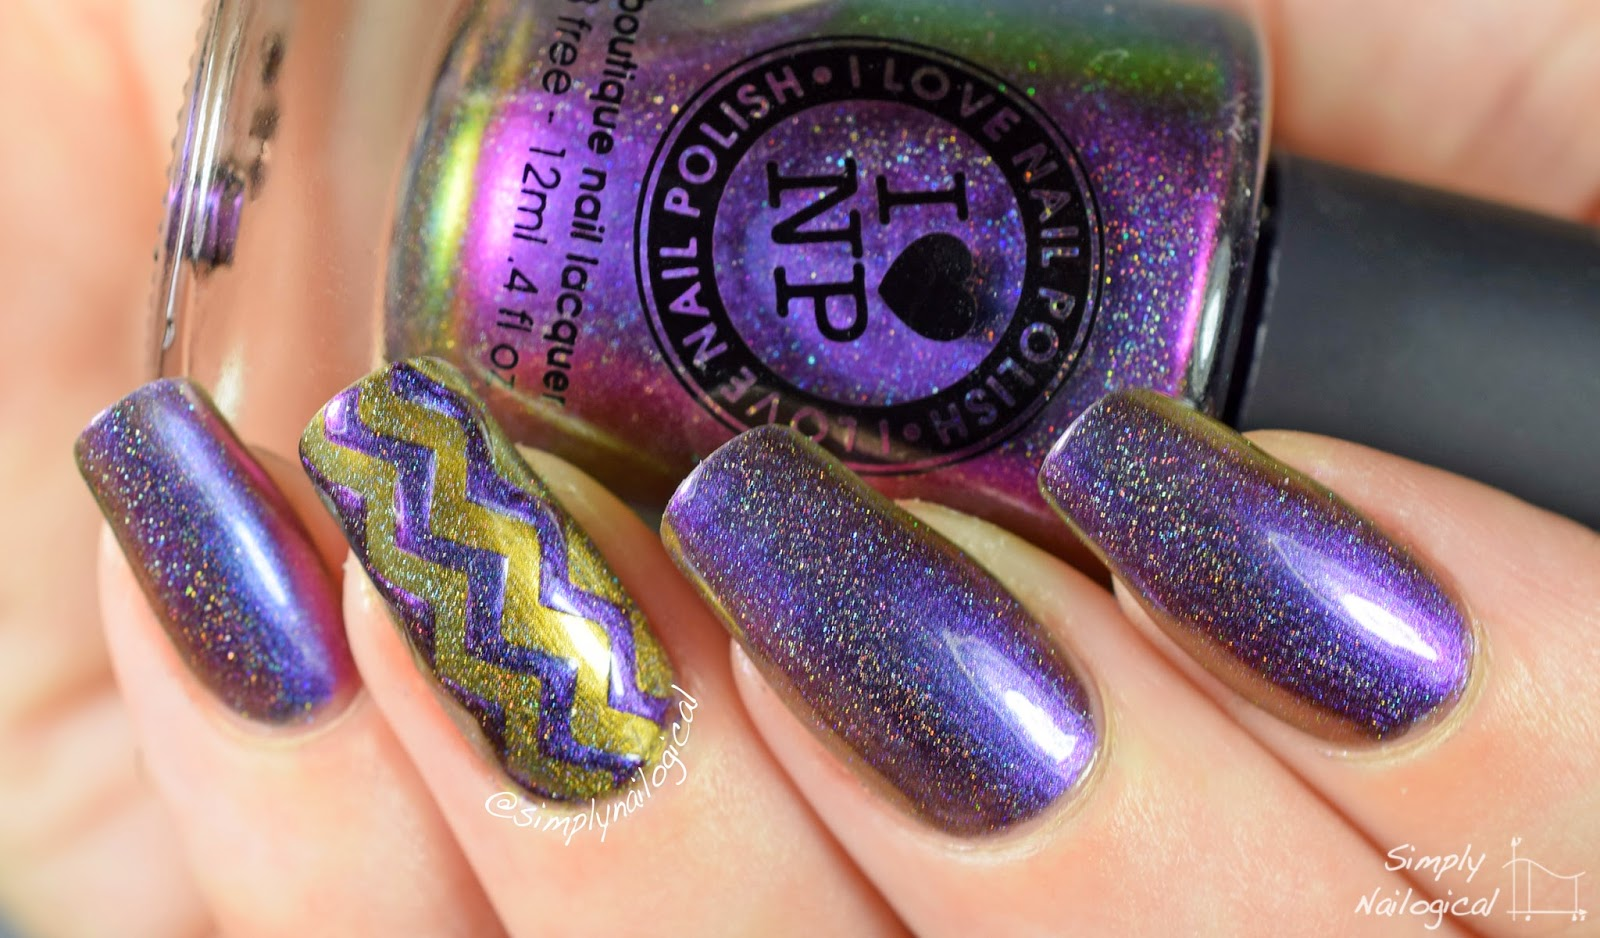 Peace (H) - ILNP Fall 2014 collection